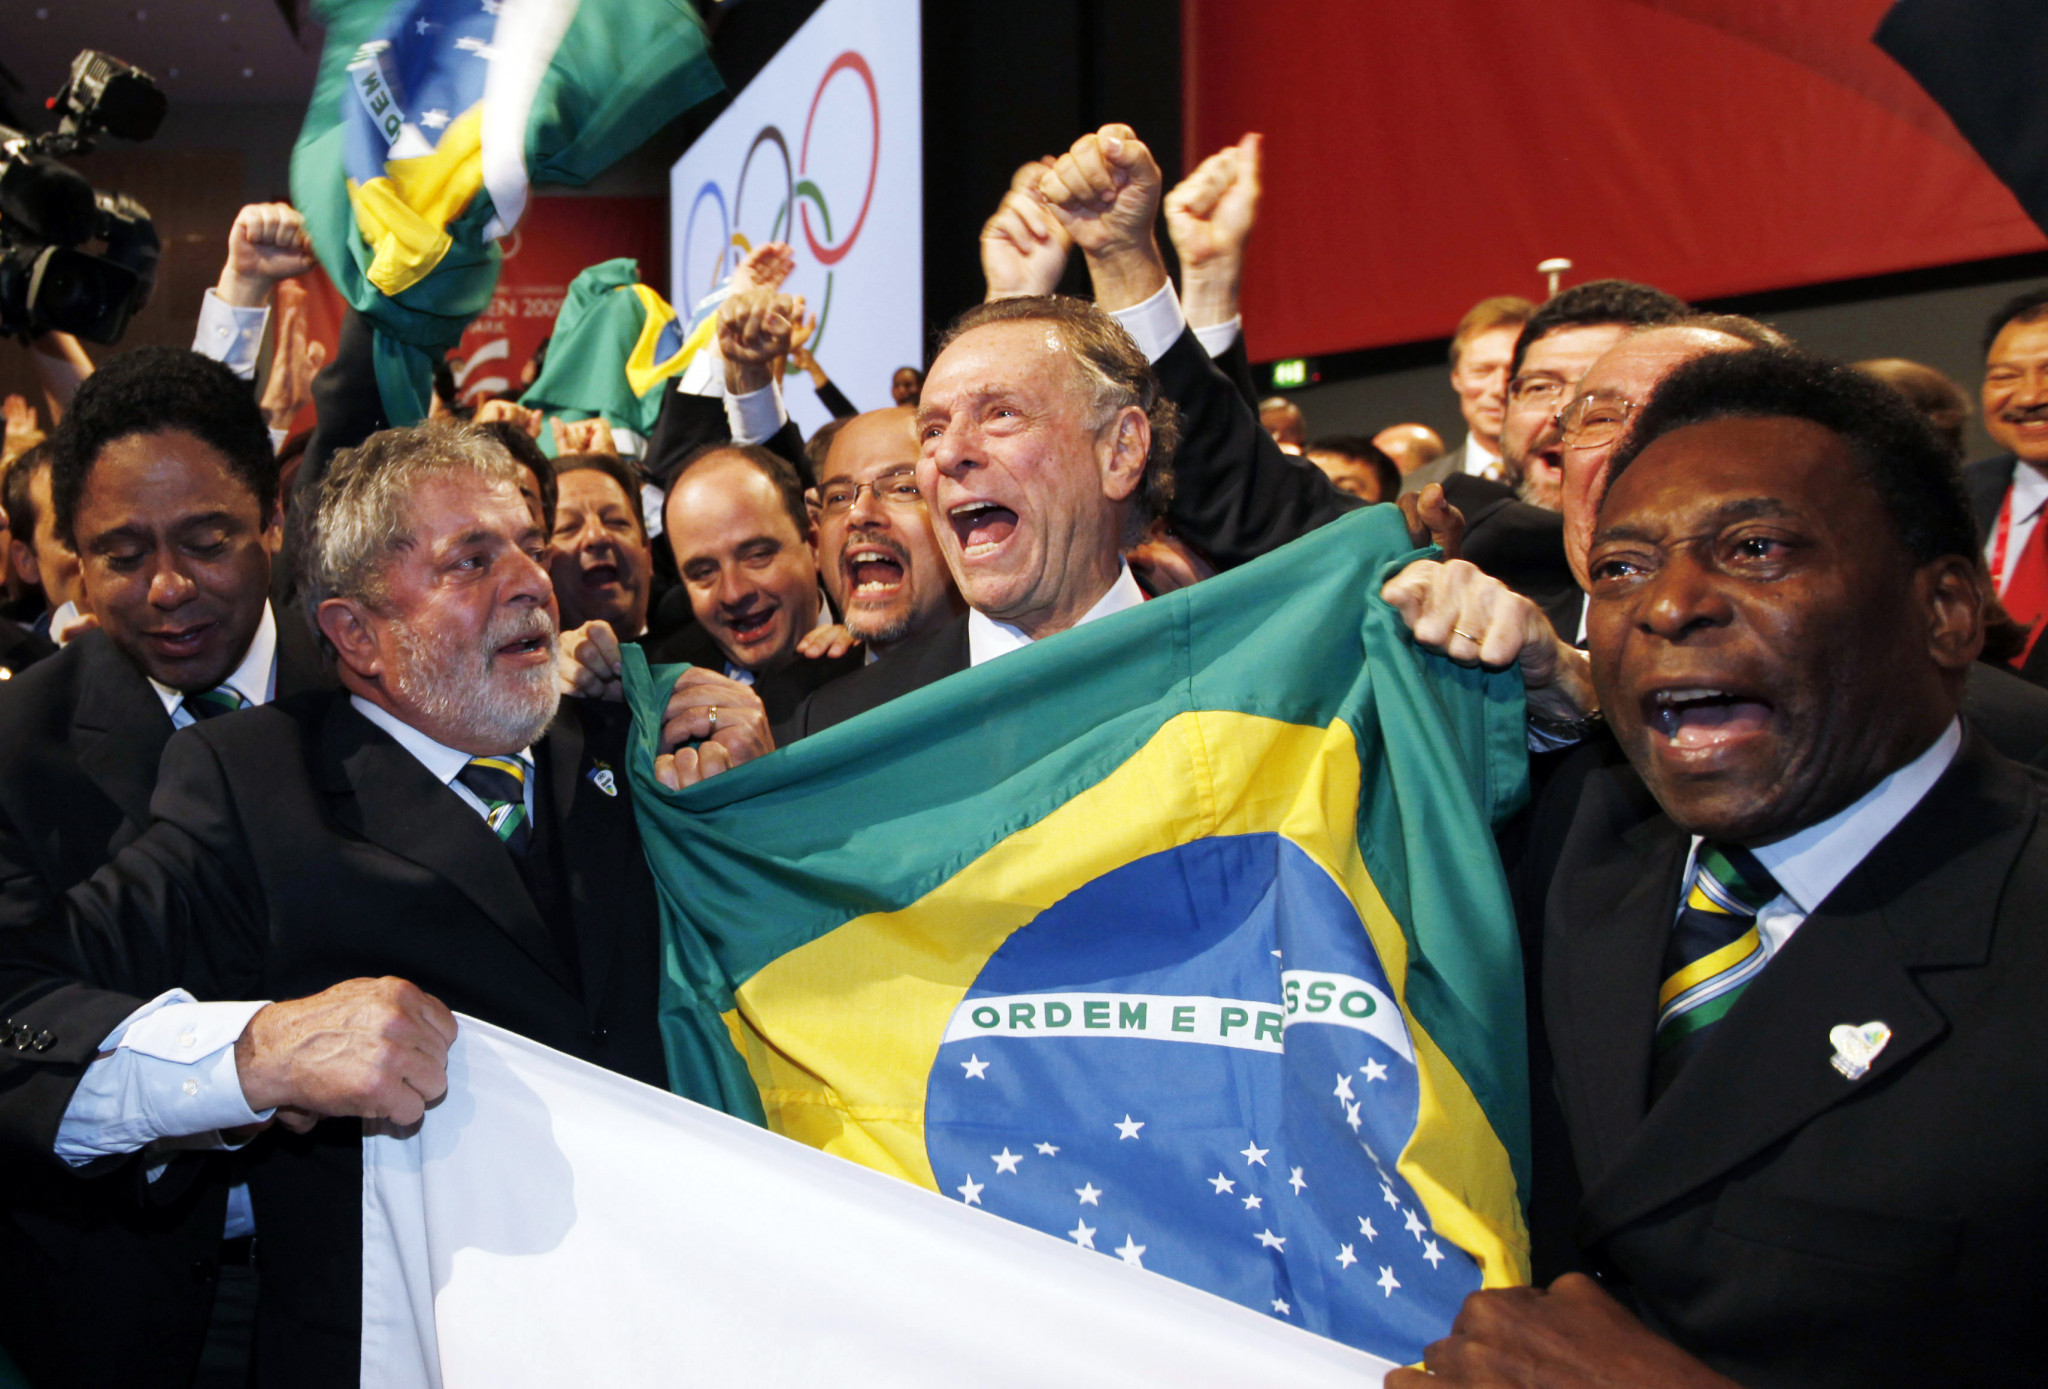 Pelé, right, pictured celebrating with Carlos Nuzman after Rio de Janeiro were awarded the Games ©Getty Images